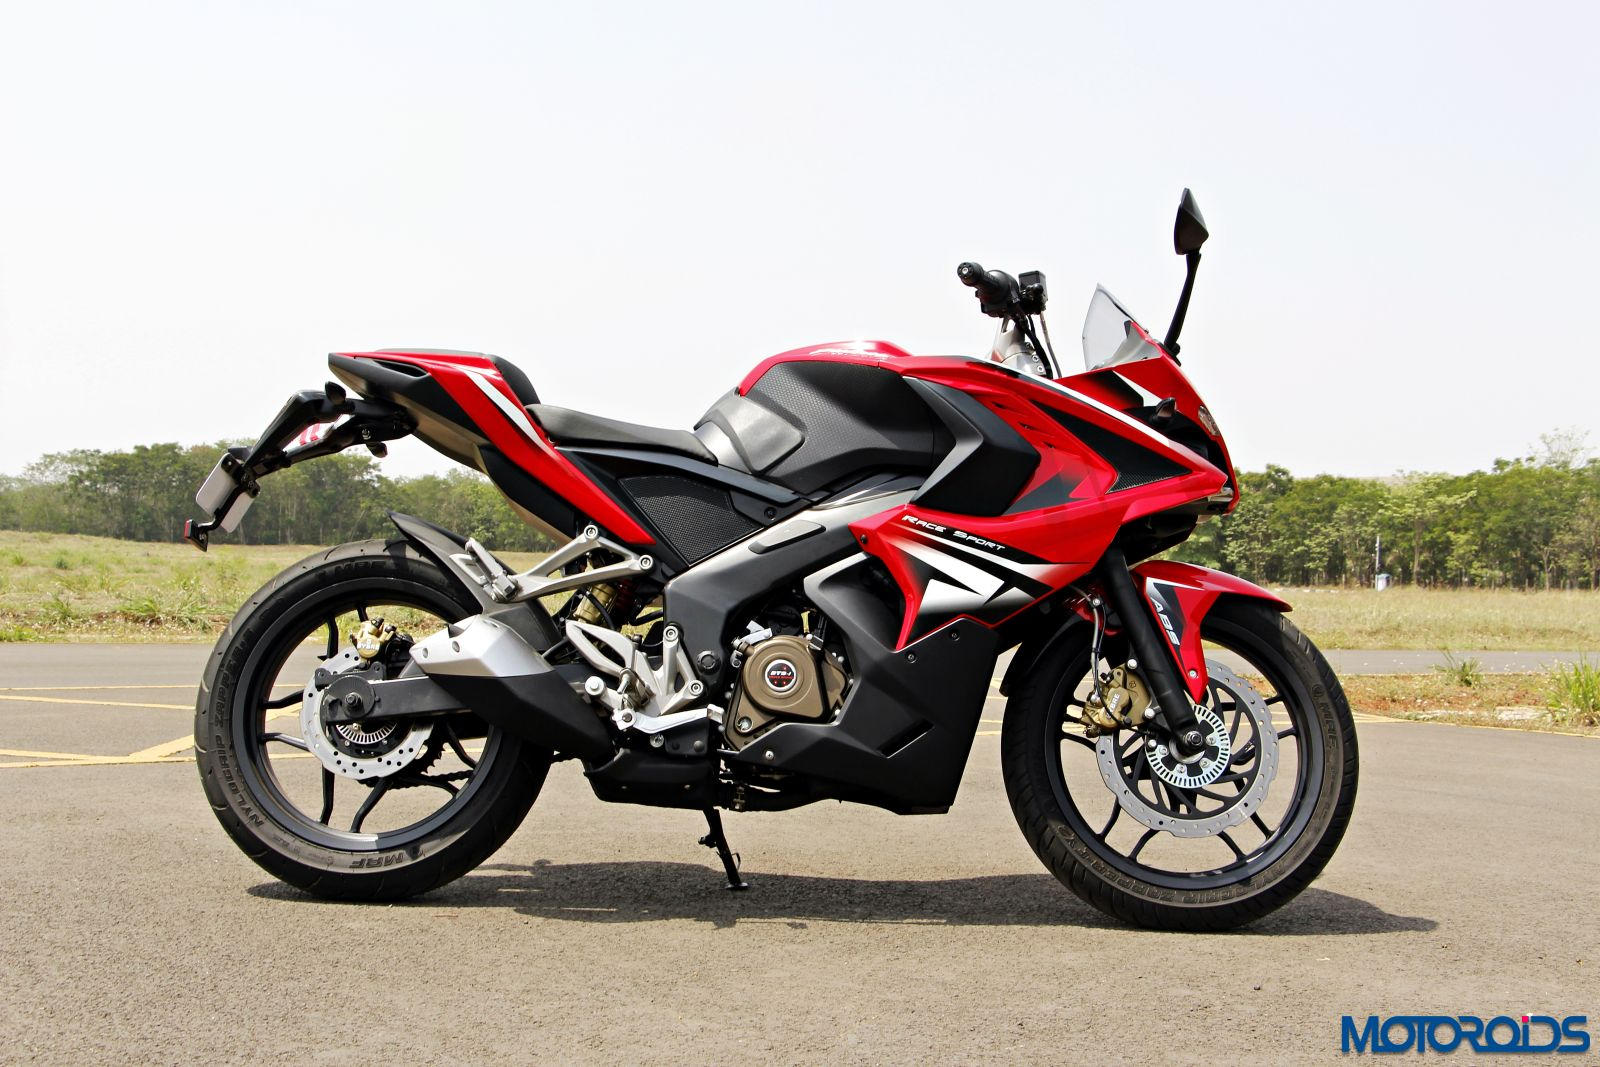 bajaj pulsar rs200 first impressions and road tester s notes motoroids